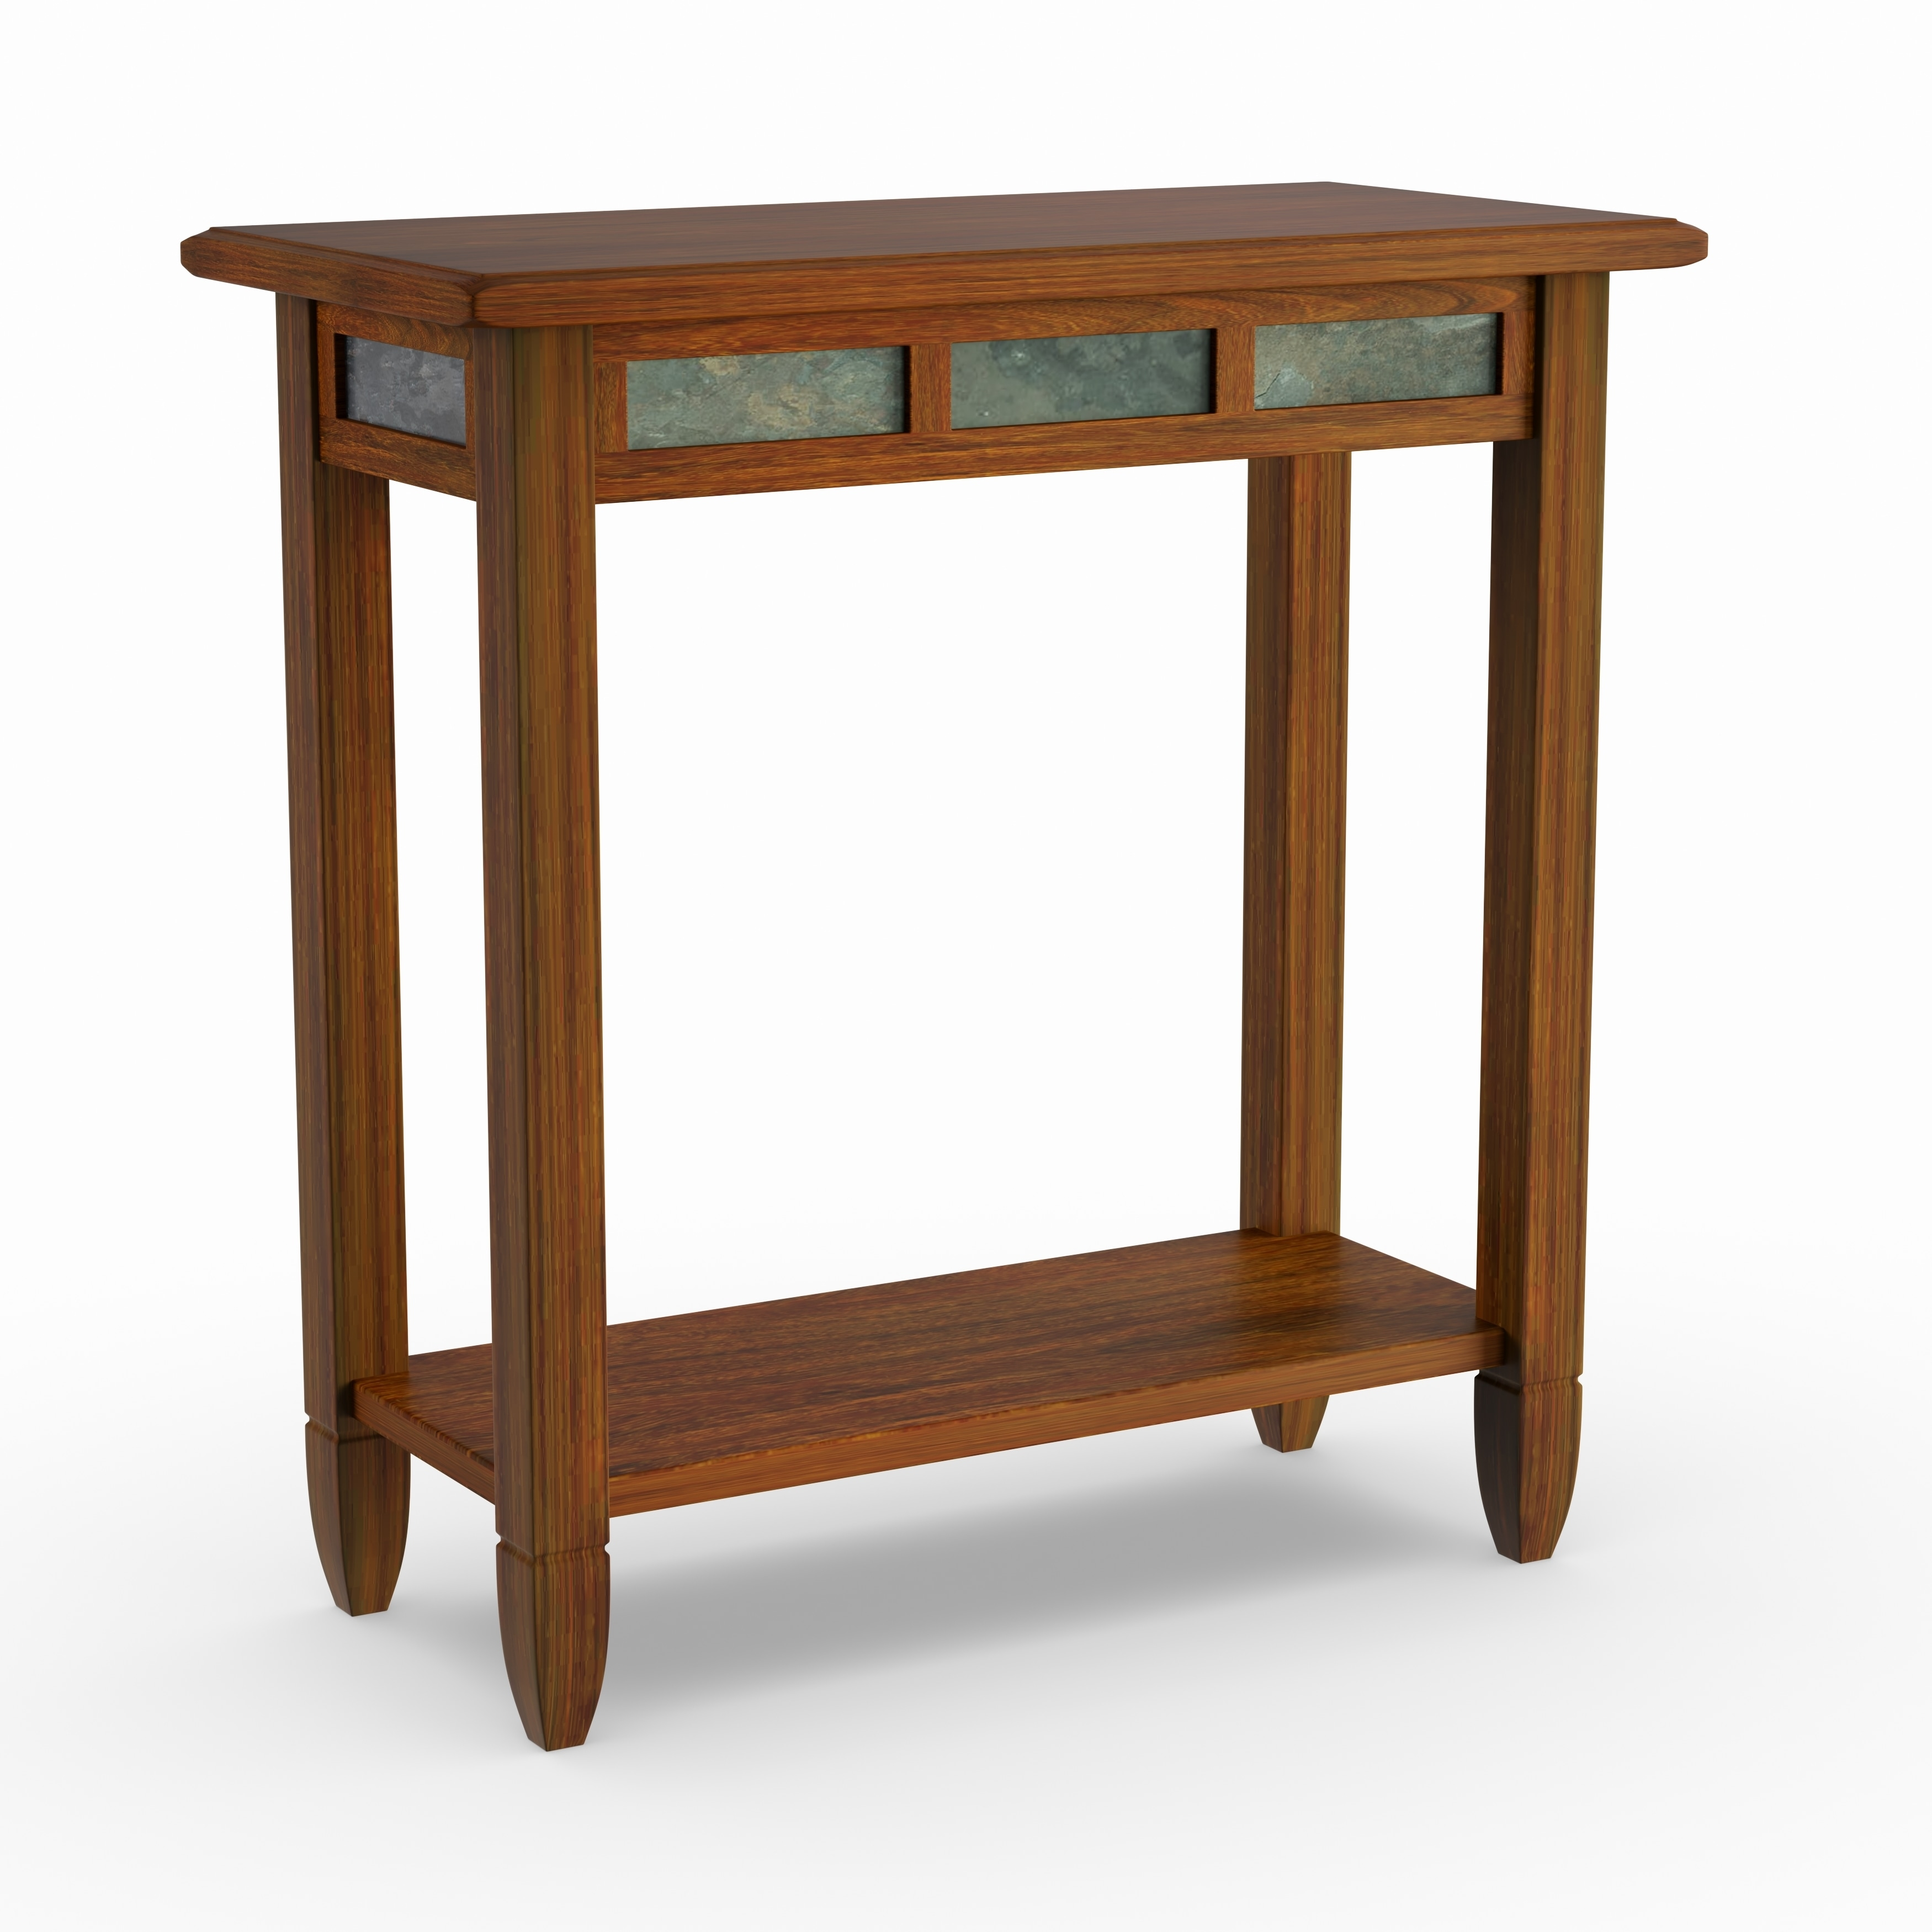 Pine Canopy Ixia Rustic Oak And Slate Tile Chairside Table Free Shipping Today 6483862